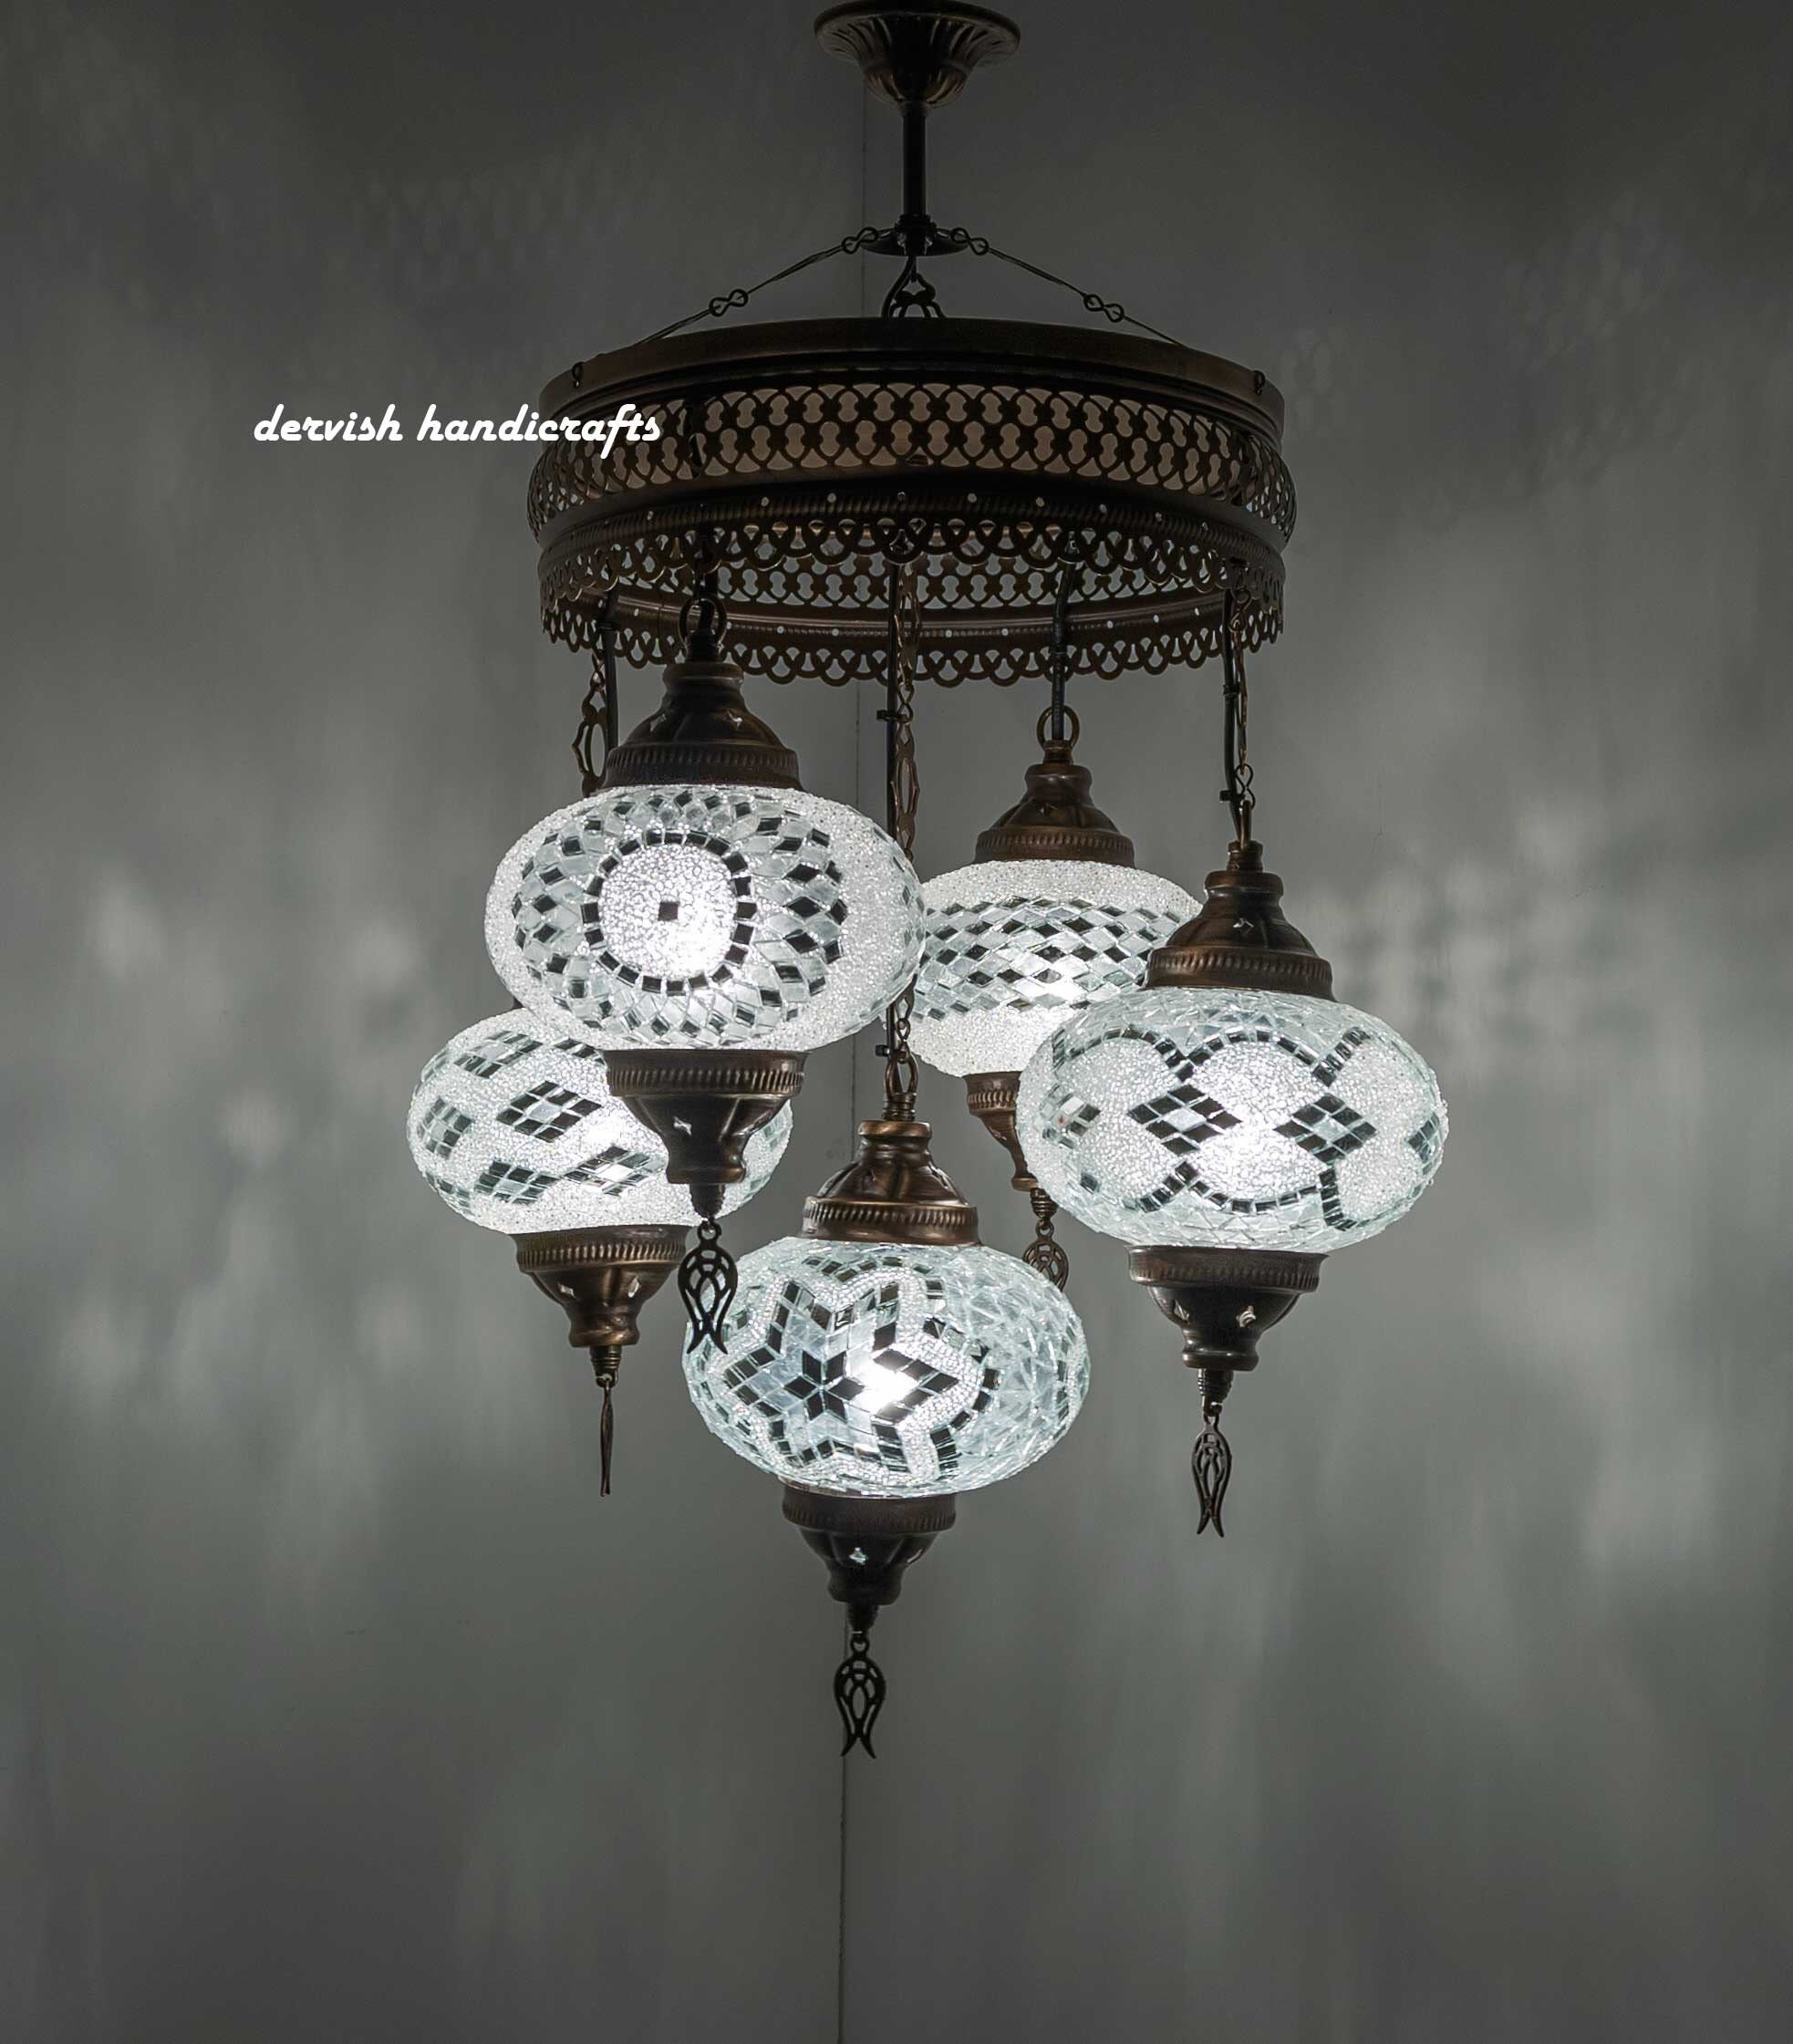 Ceiling lamp chandelier lighting turkish lamp hanging lampshades entryway chandelier hanging pendant light moroccan lamp hanging